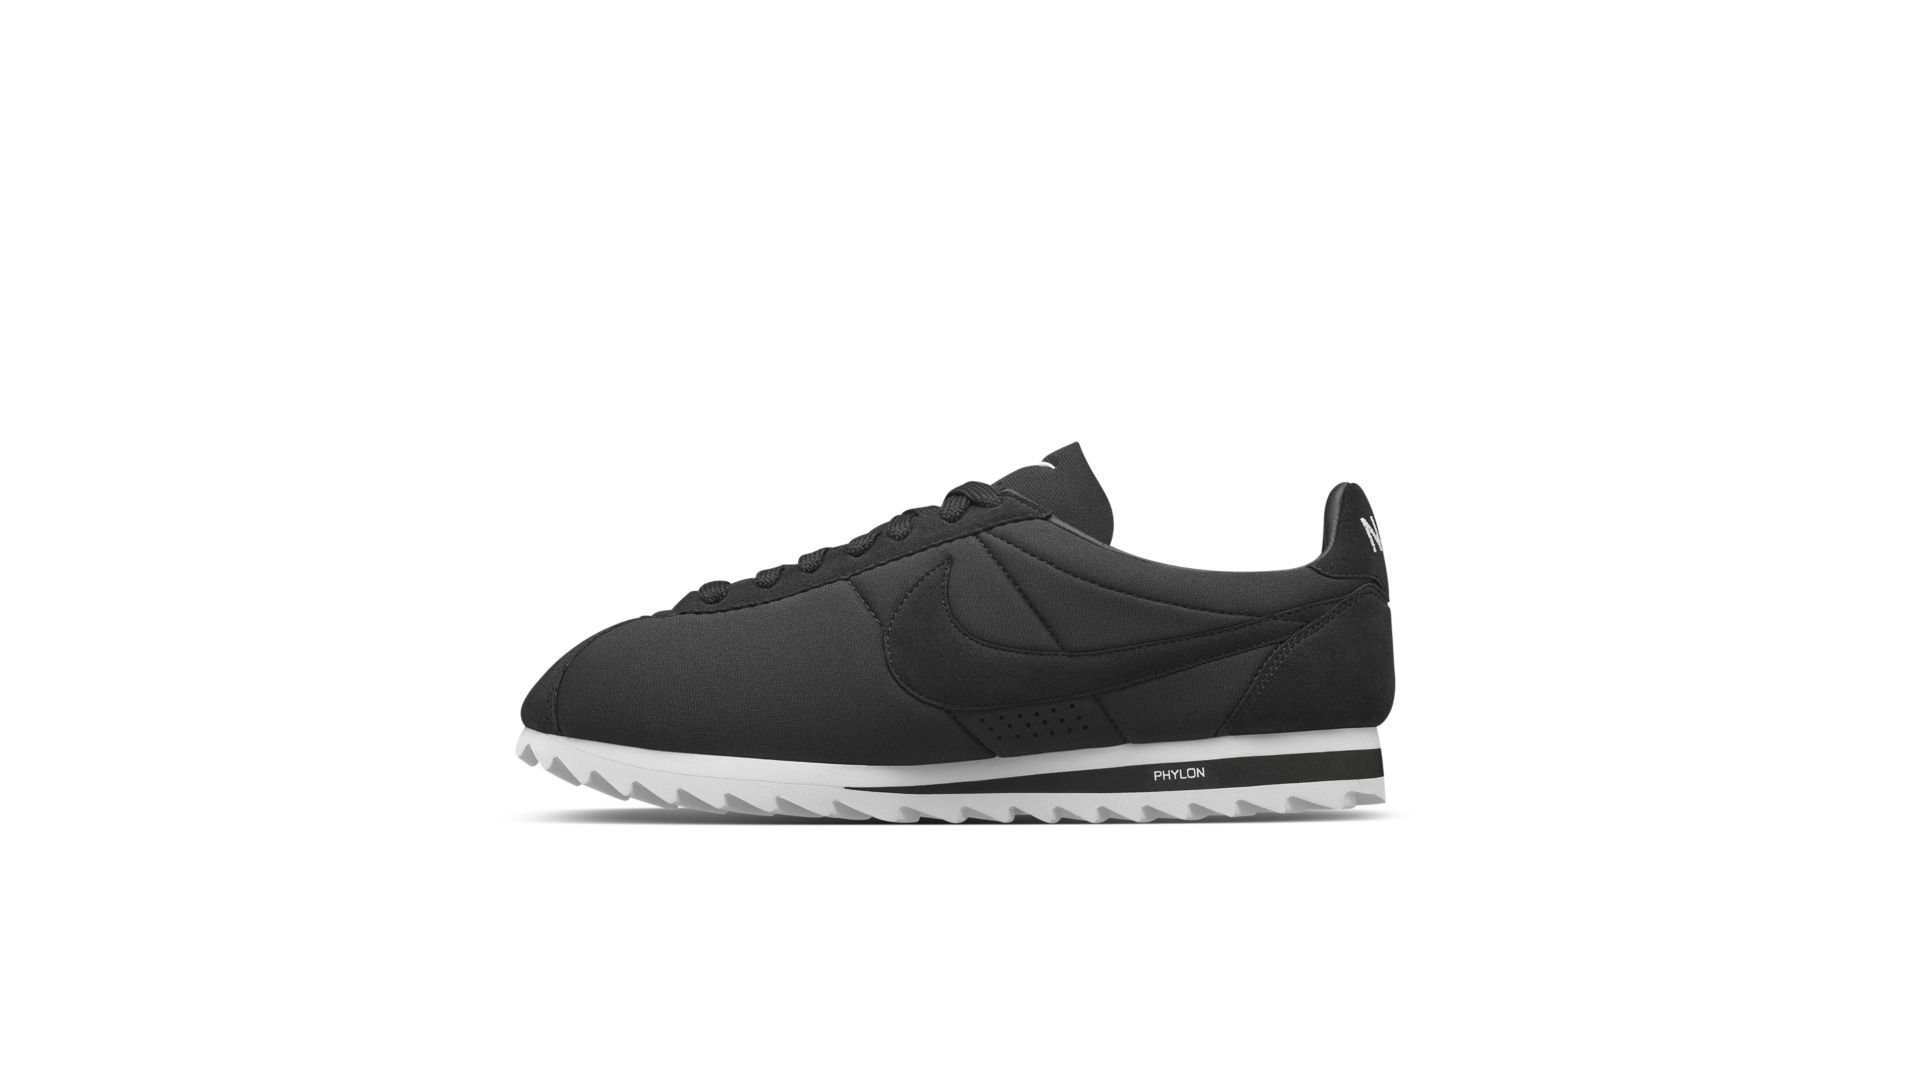 Nike Classic Cortez Shark Big Tooth Black Showstopper (2015/2017) (810135-010)